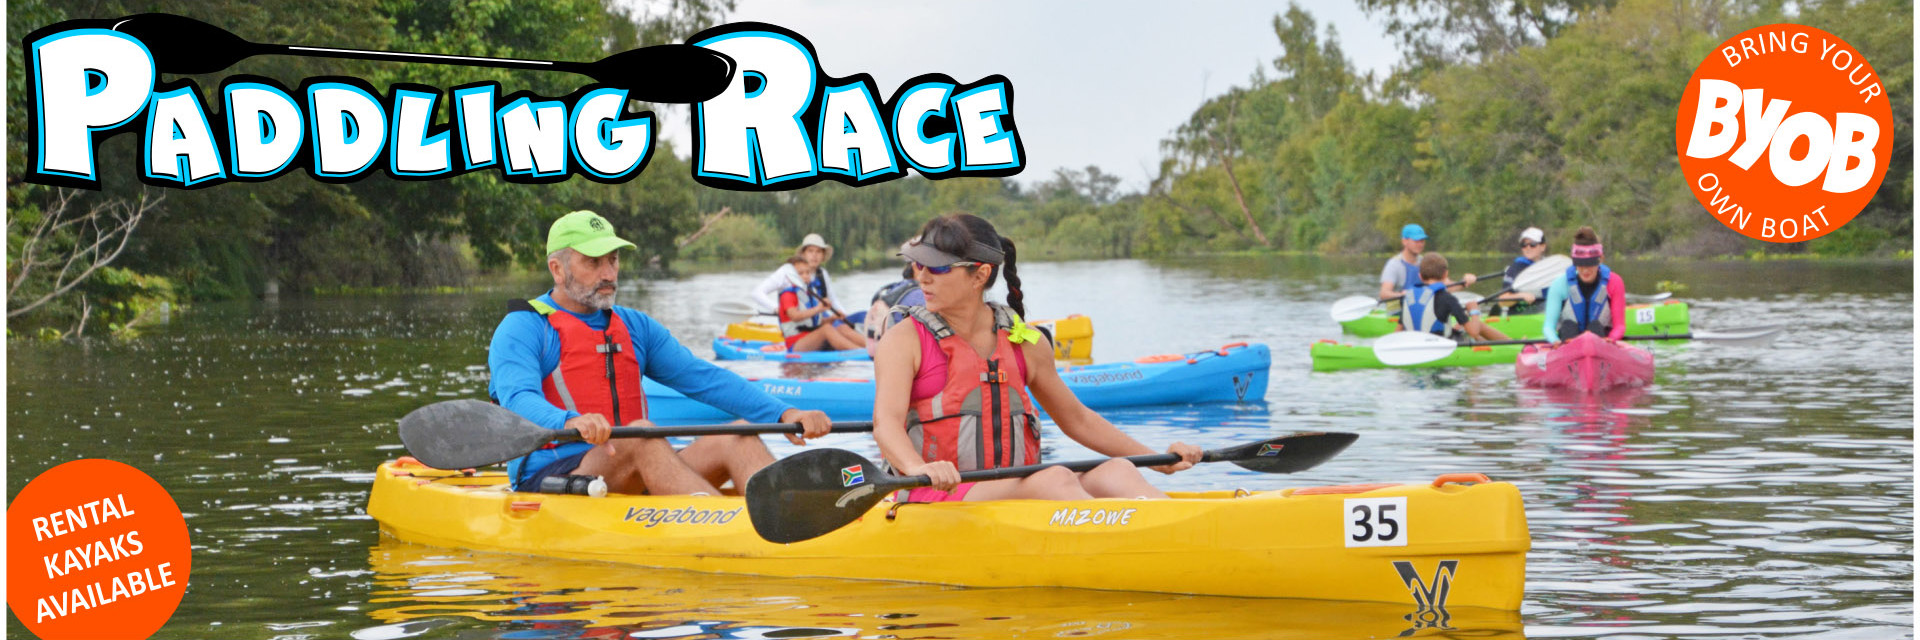 Paddling Race for everyone